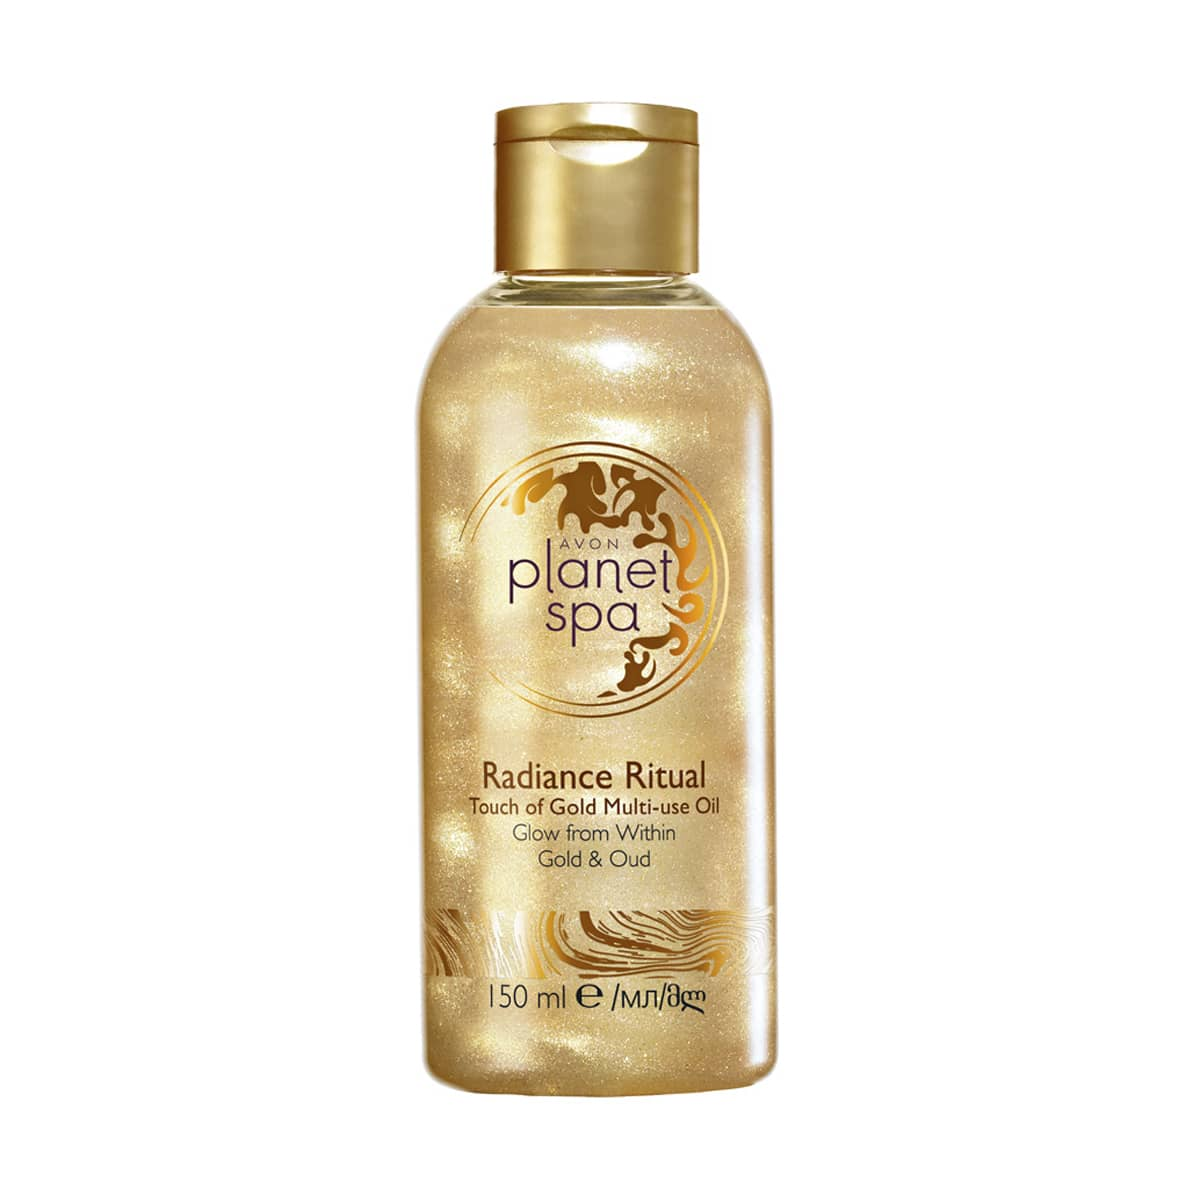 Planet Spa Radiance Ritual Touch of Gold Multi-Use Oil 1380768 150ml